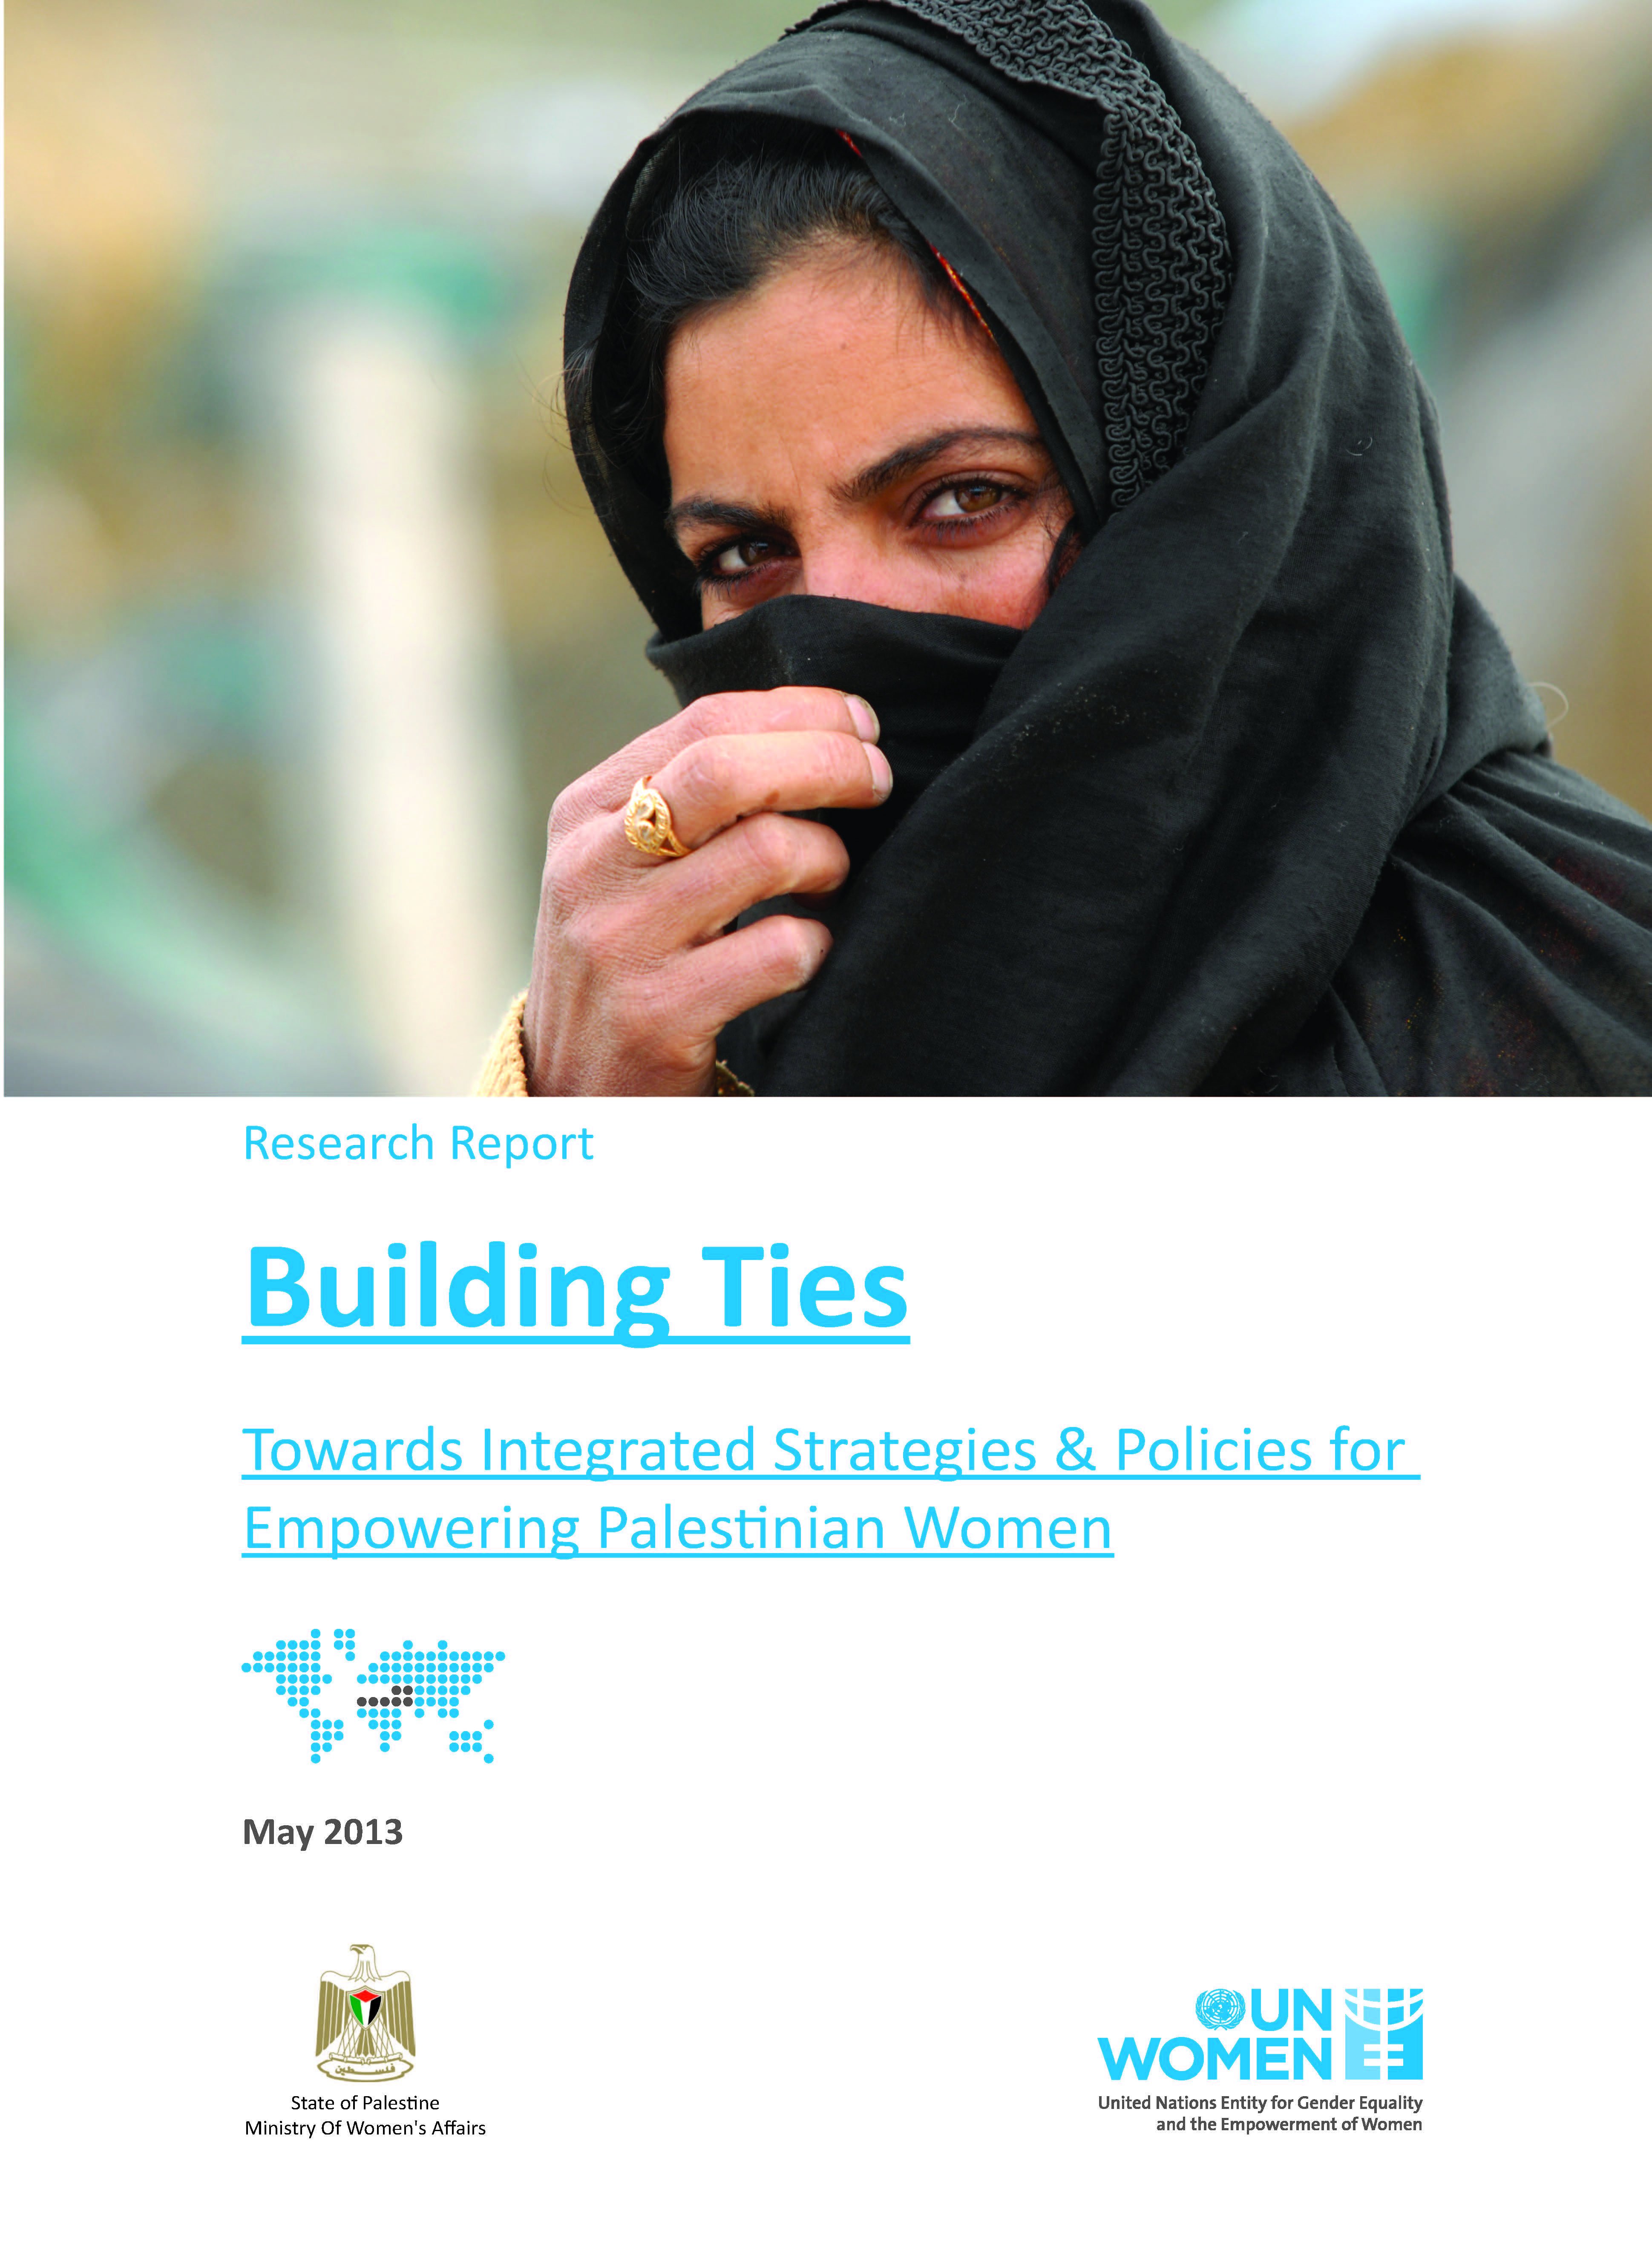 Building Ties: Towards Integrated Strategic & Policies for Empowering Palestinian Women